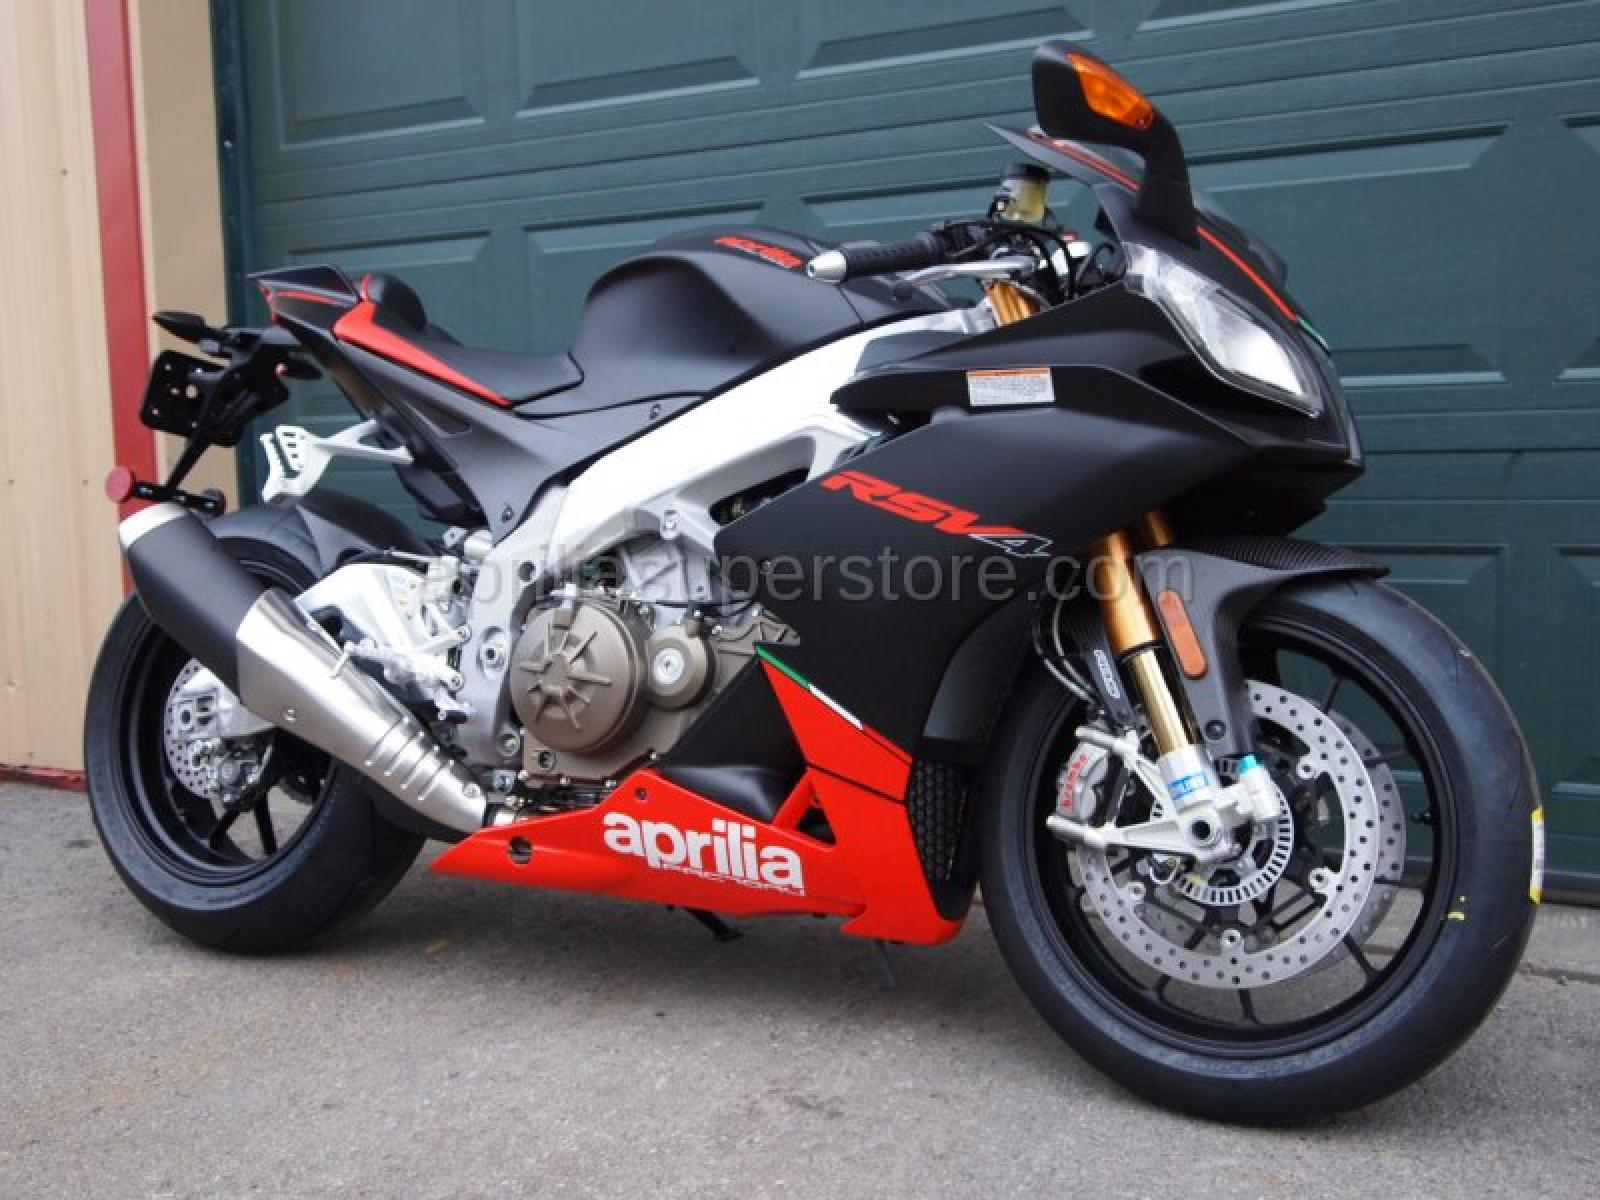 2014 aprilia rsv4 factory aprc abs moto zombdrive com. Black Bedroom Furniture Sets. Home Design Ideas